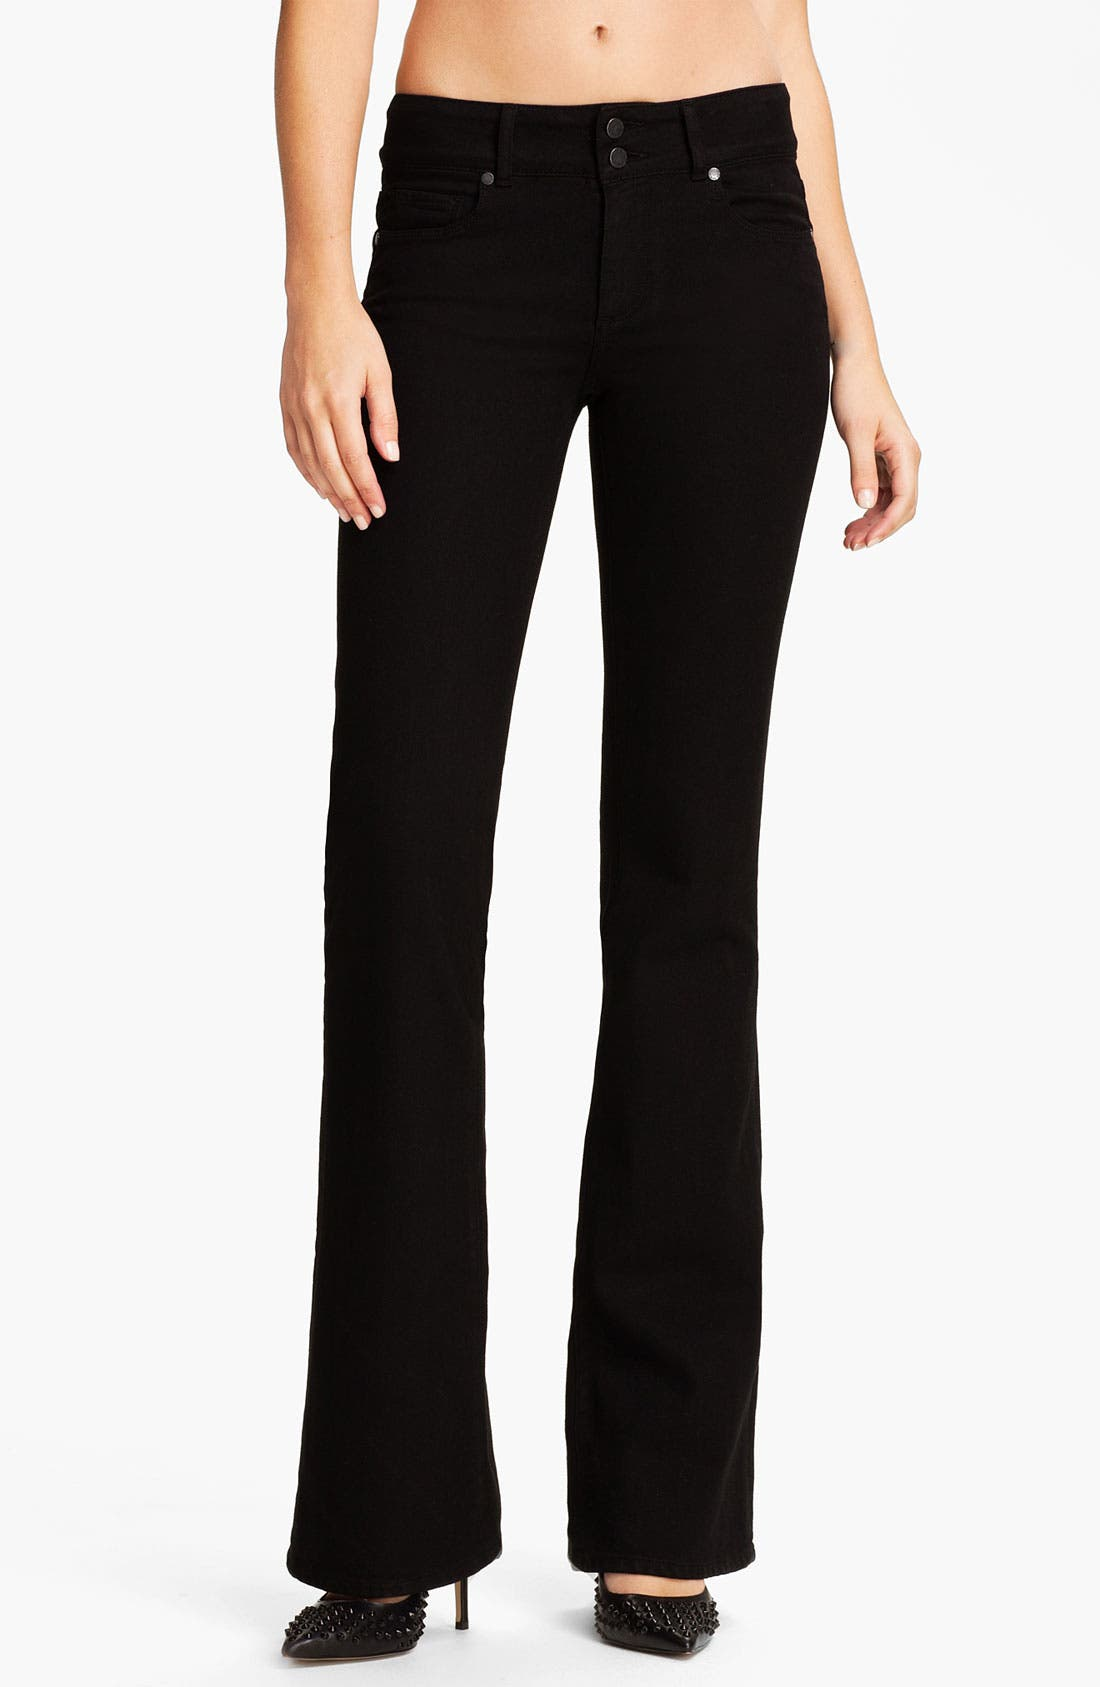 Main Image - Paige Denim 'Hidden Hills' Bootcut Stretch Jeans (Jet Black)